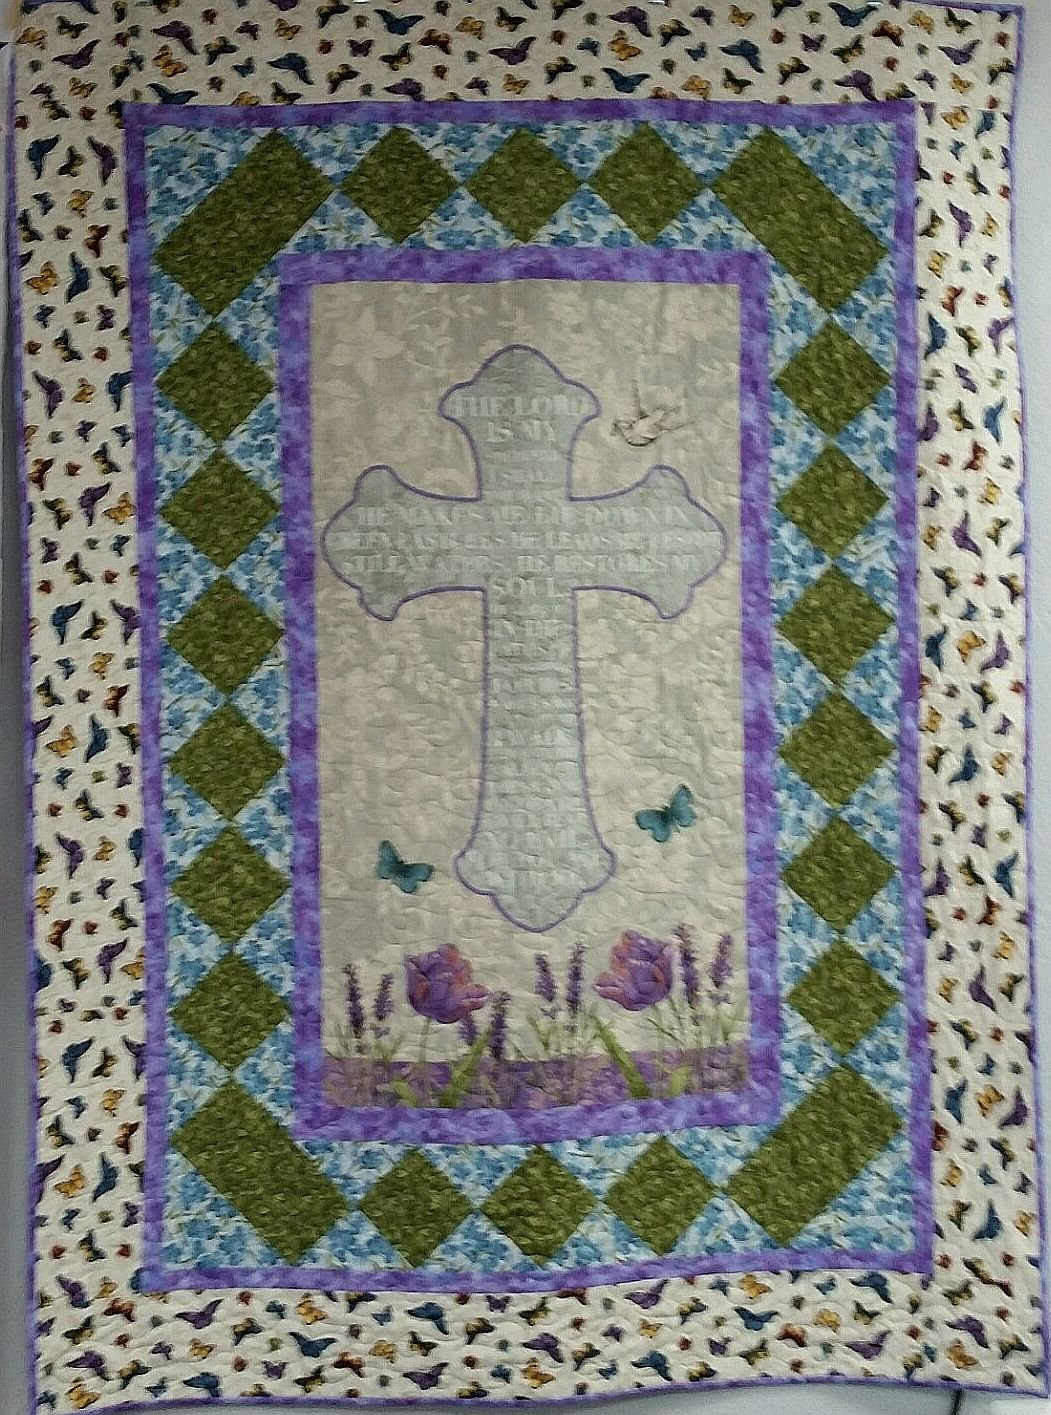 Walk by Faith Quilt